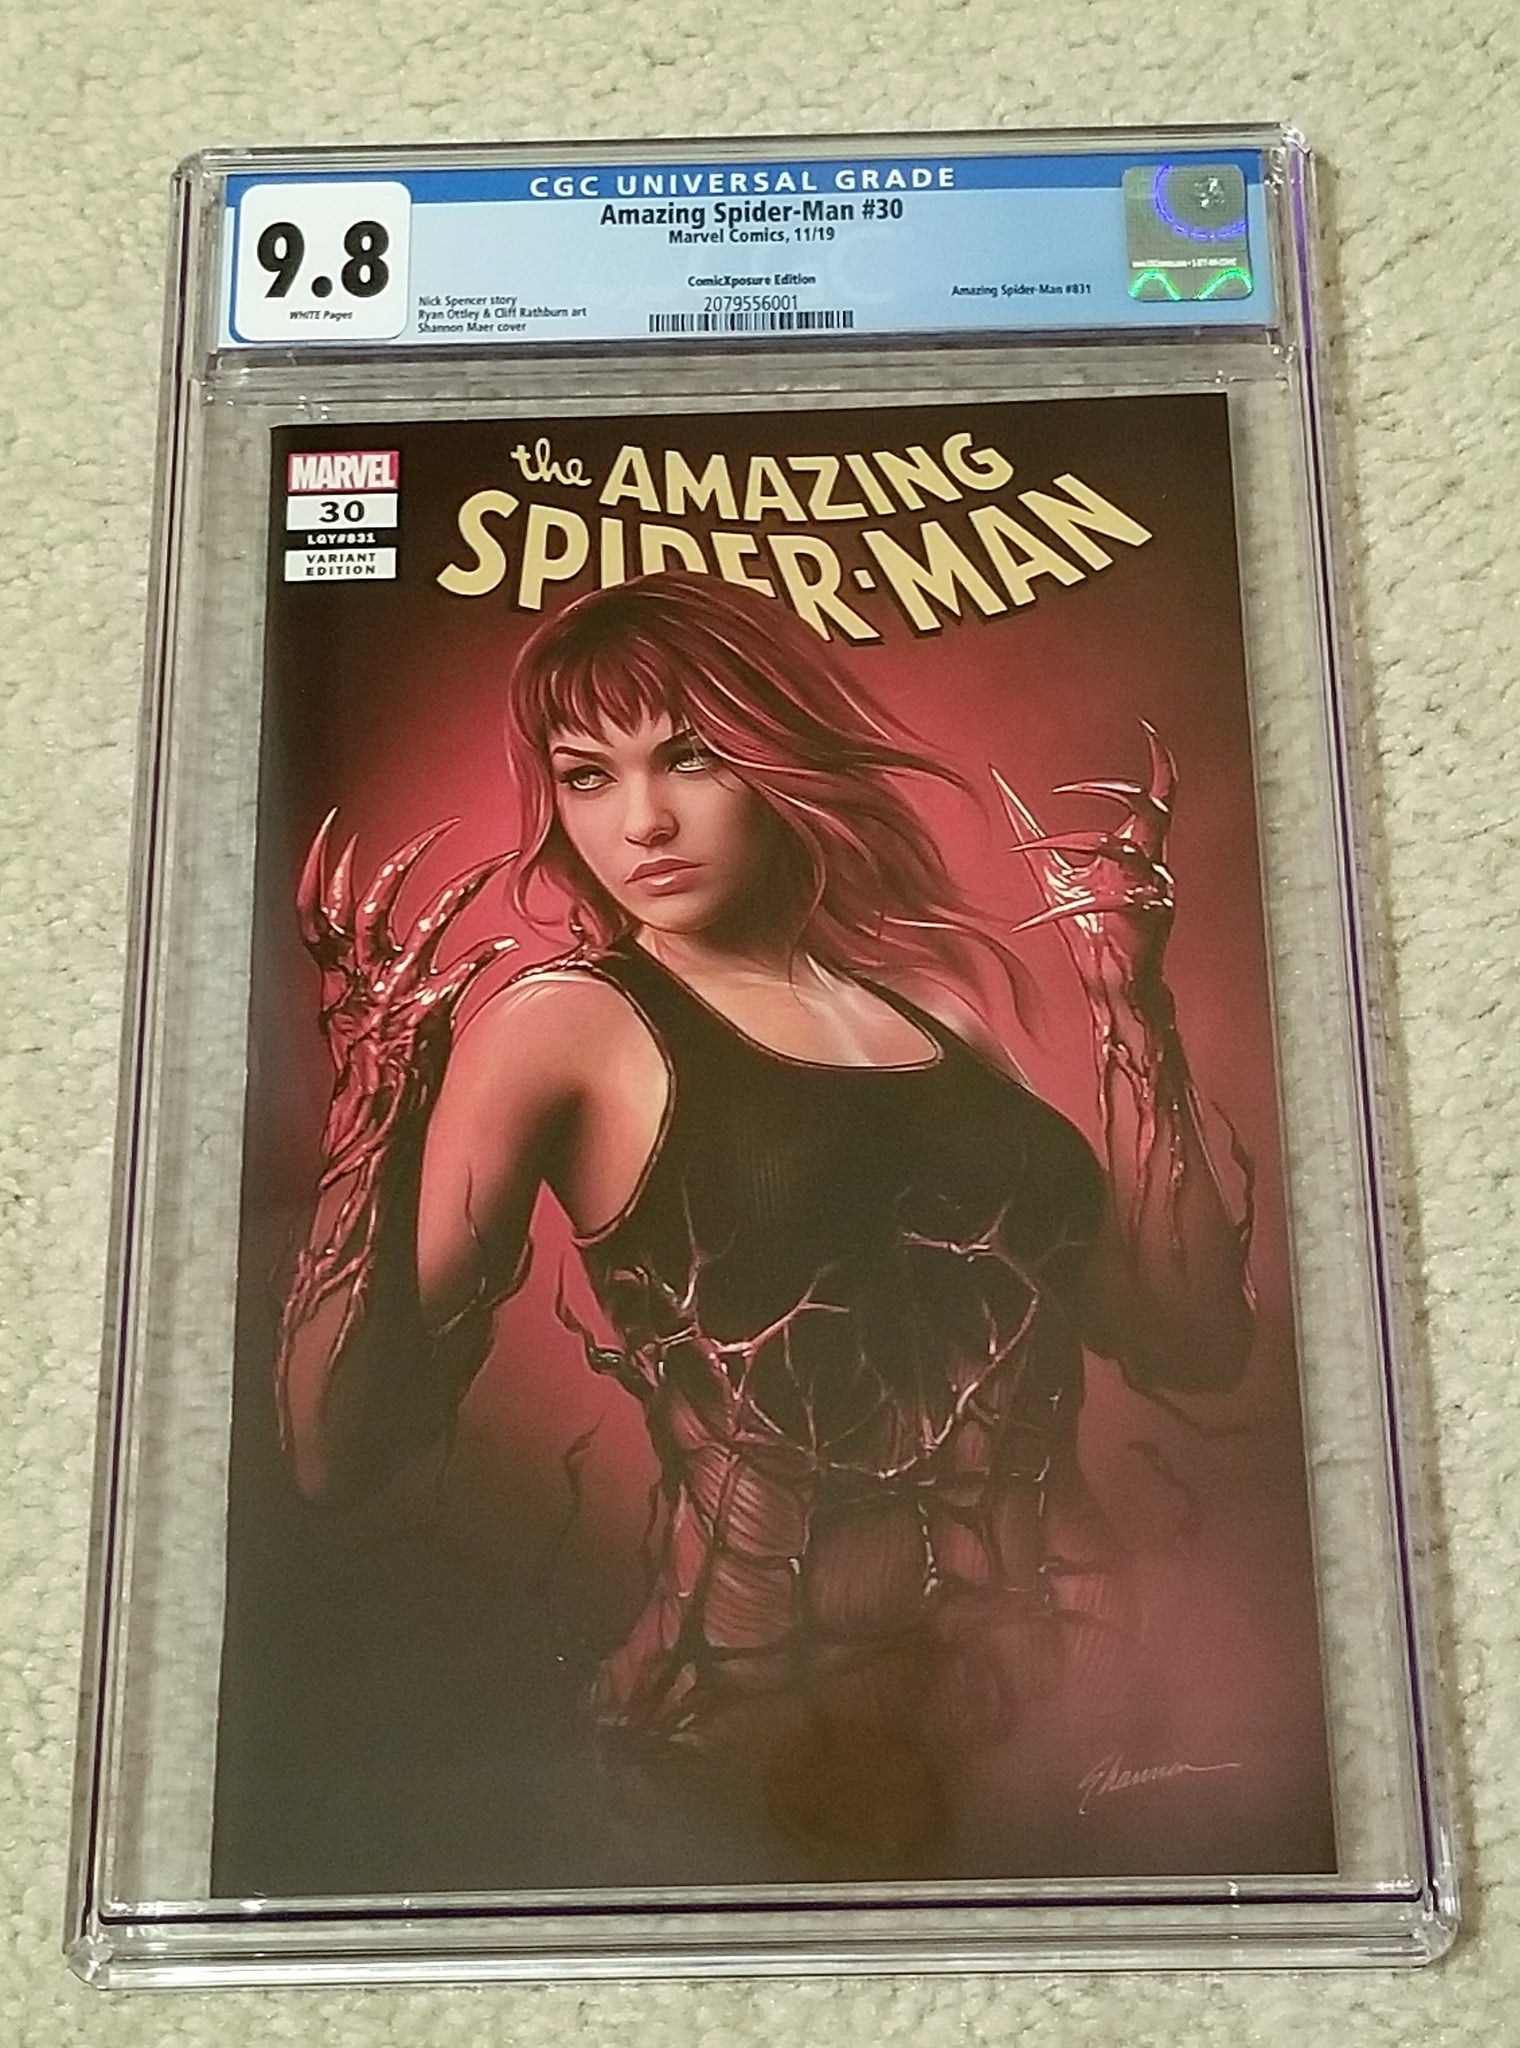 Amazing Spider-man 30 Spiderman Shannon Maer Variant DC Comics Marvel Comics Venom Carnage Mary Jane East Side Comics Comicxposure Virgin Exclusive cgc NYCC New York Comic Con